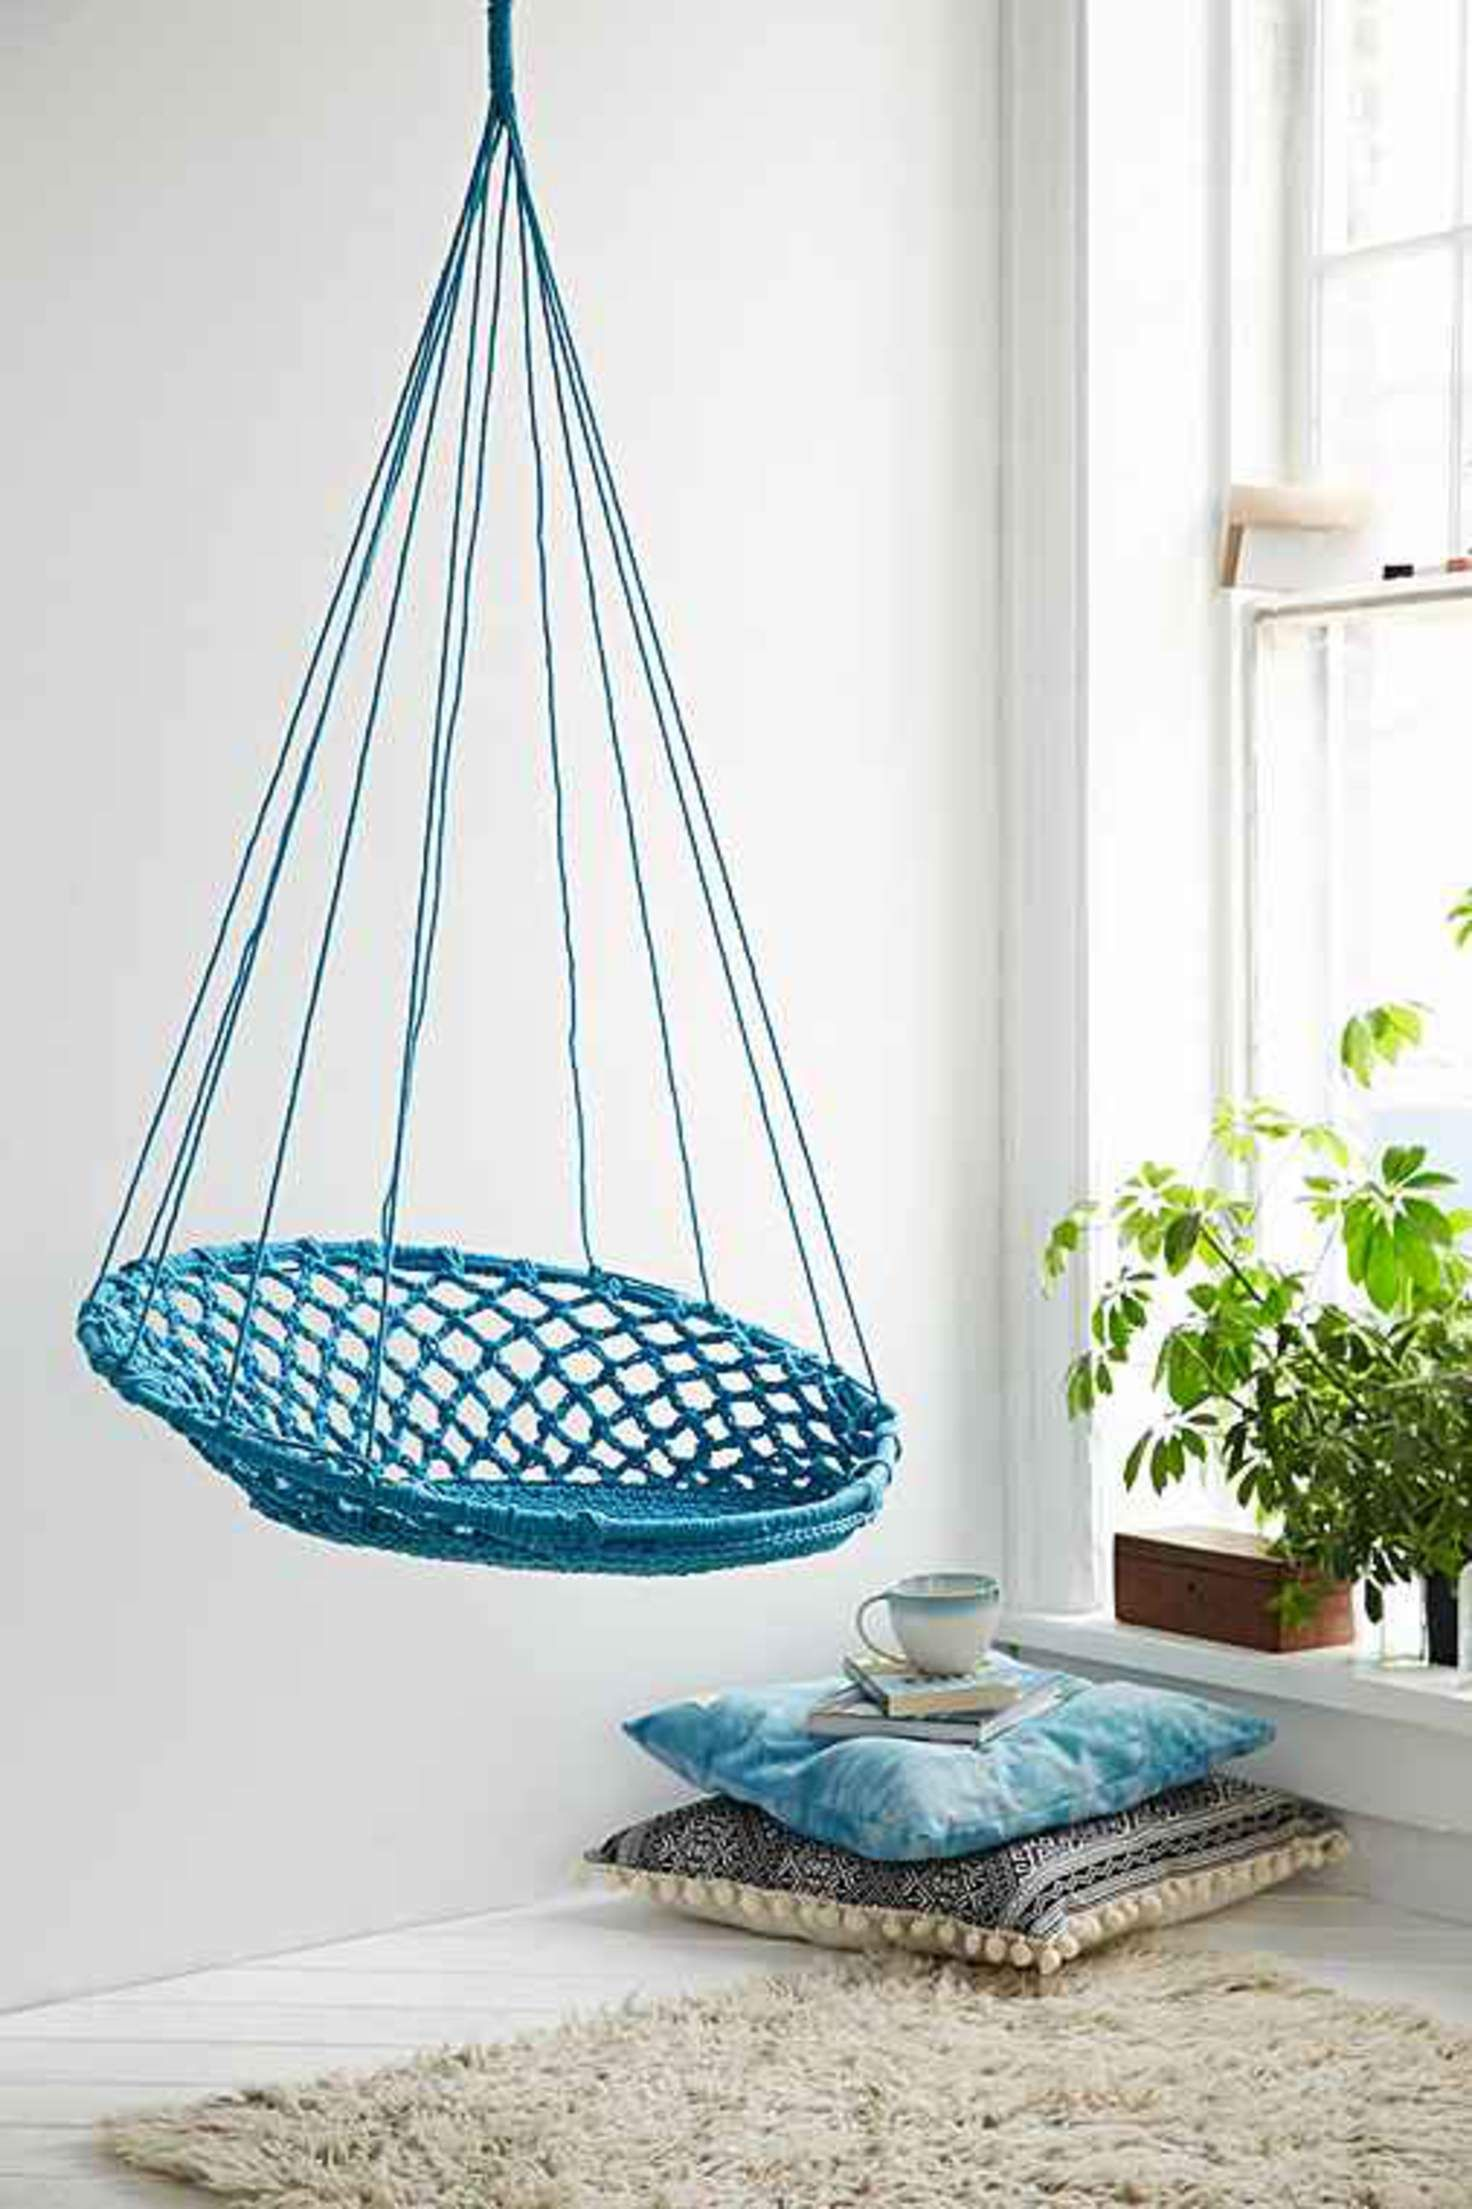 Cuzco hanging chair turquoise one furniture design pinterest